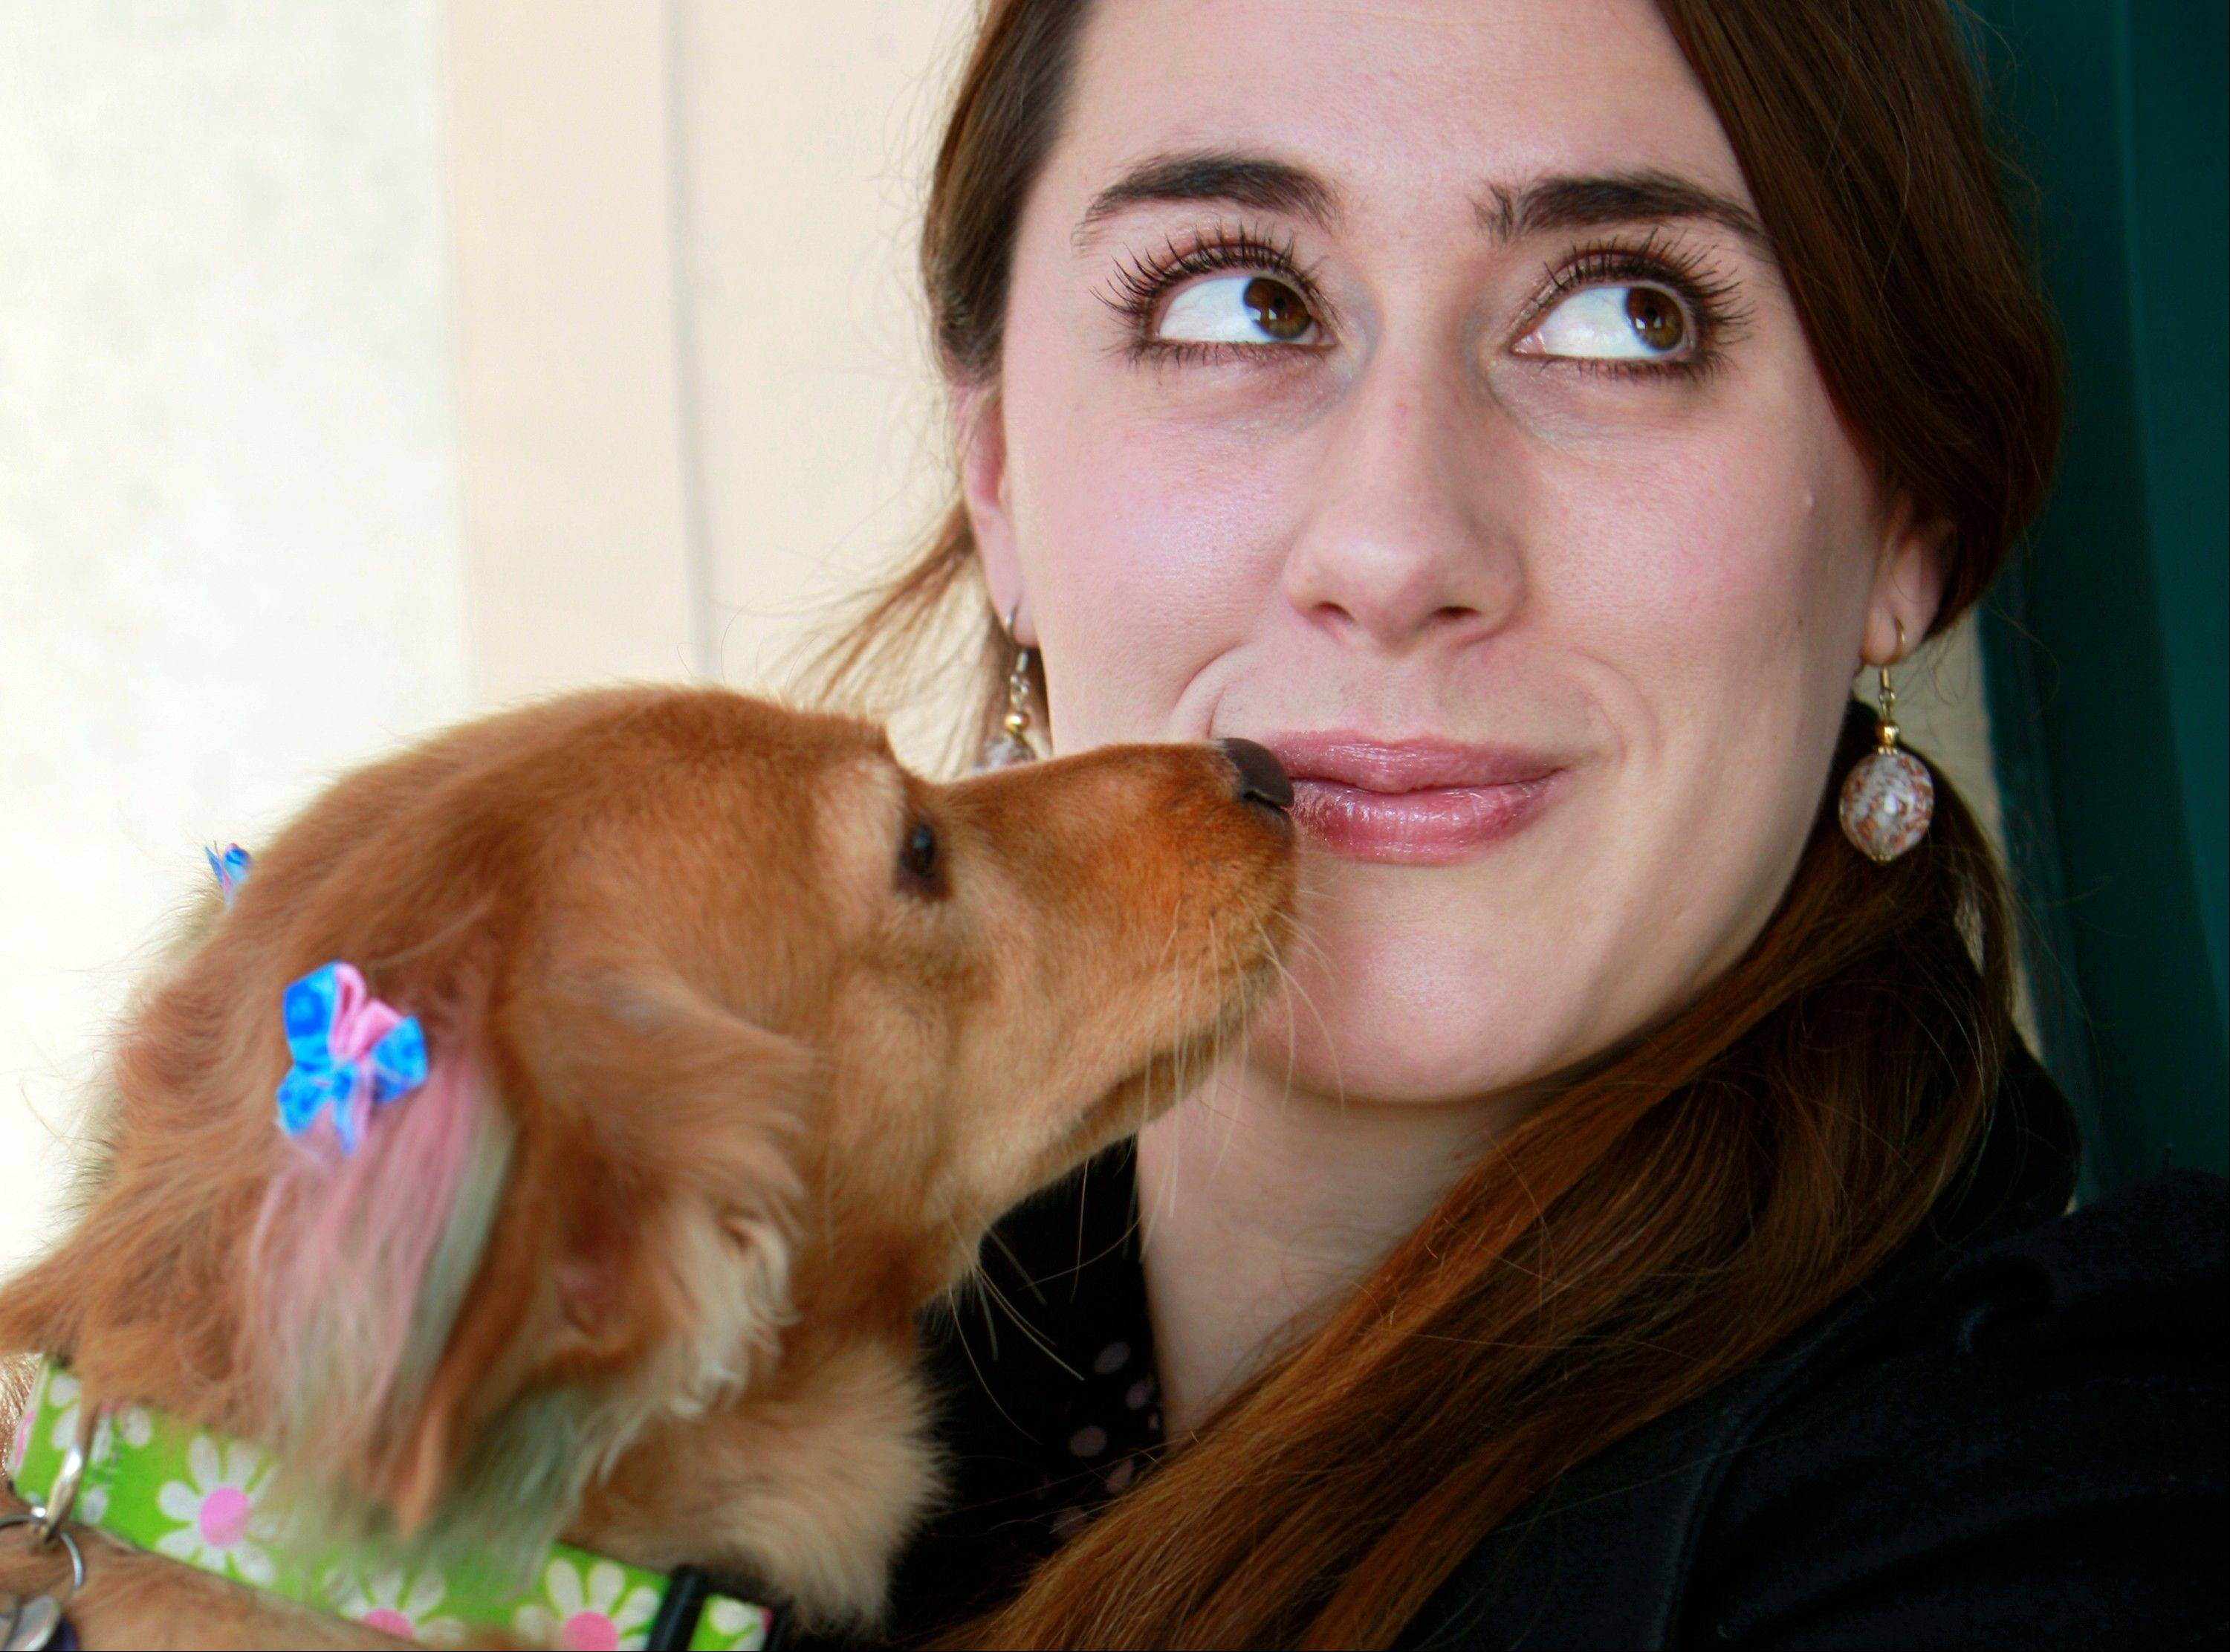 Sasha Sinnott holds her dog, a 2-year-old dachshund mix, Sugarplum, after a chalking at the PetSmart in Culver City, Calif. Sugarplum went into the salon as a reddish-blonde dachshund mix and came out with pink and green ears, a rainbow tail and a bow in her fur.